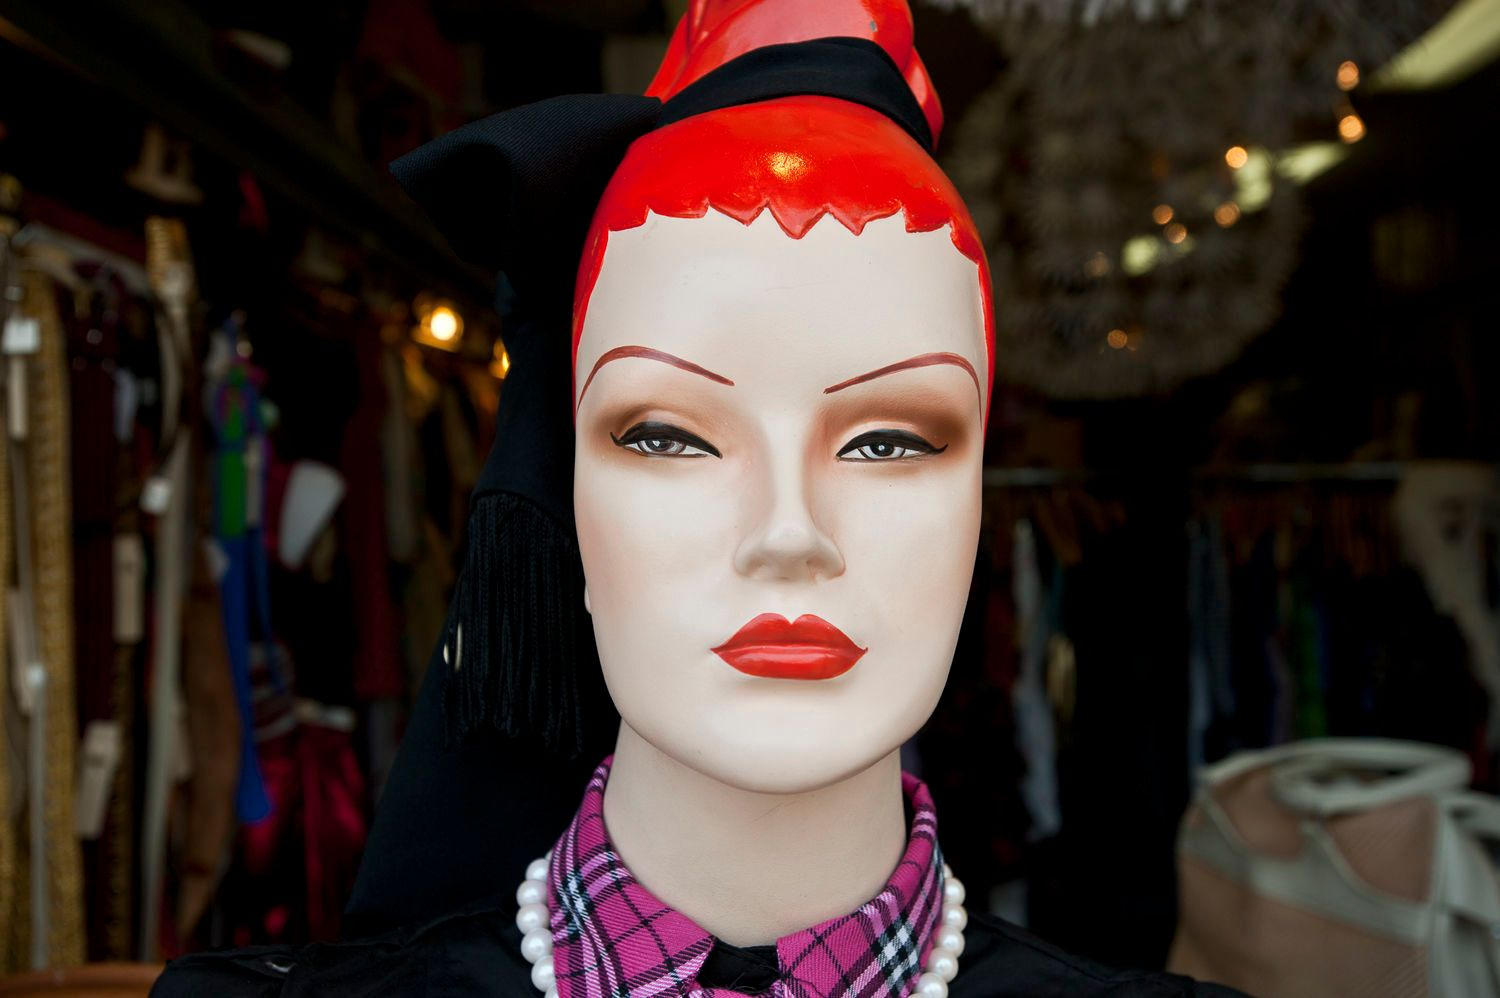 Mannequin with Red Hair